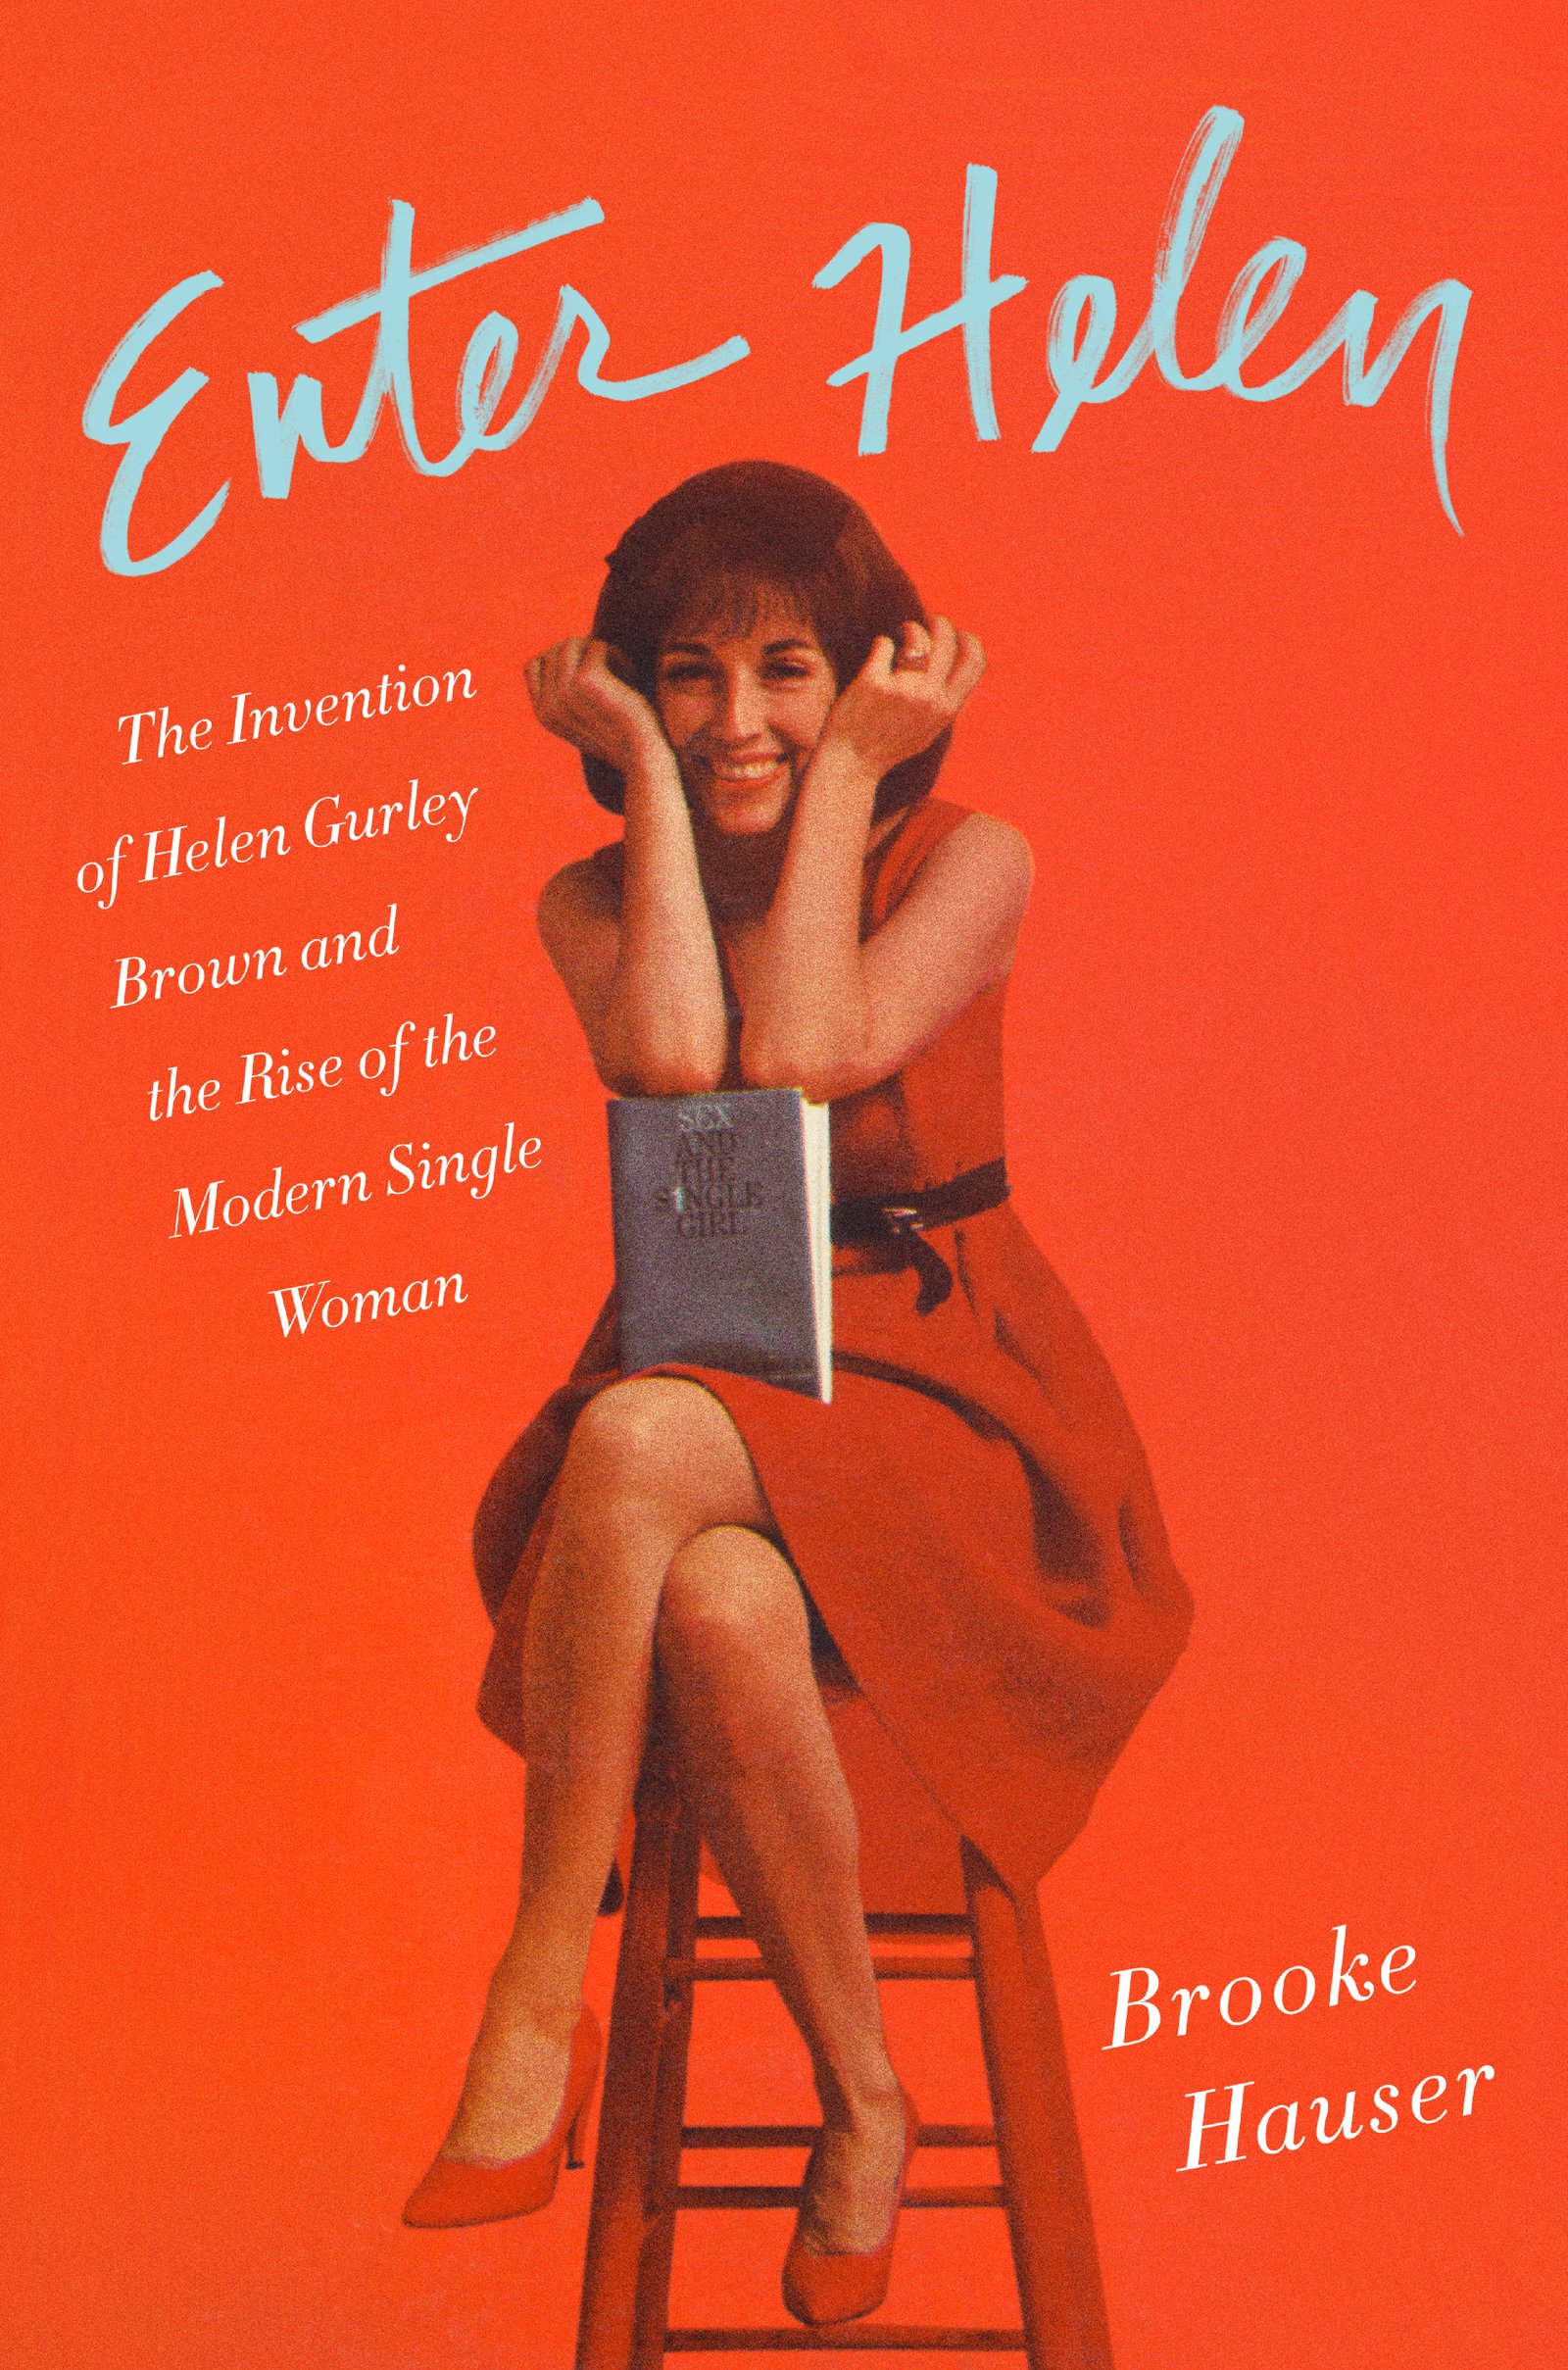 Book Launch: Enter Helen: The Invention of Helen Gurley Brown and the Rise of the Modern Single Woman by Brooke Hauser in conversation with Anna Holmes